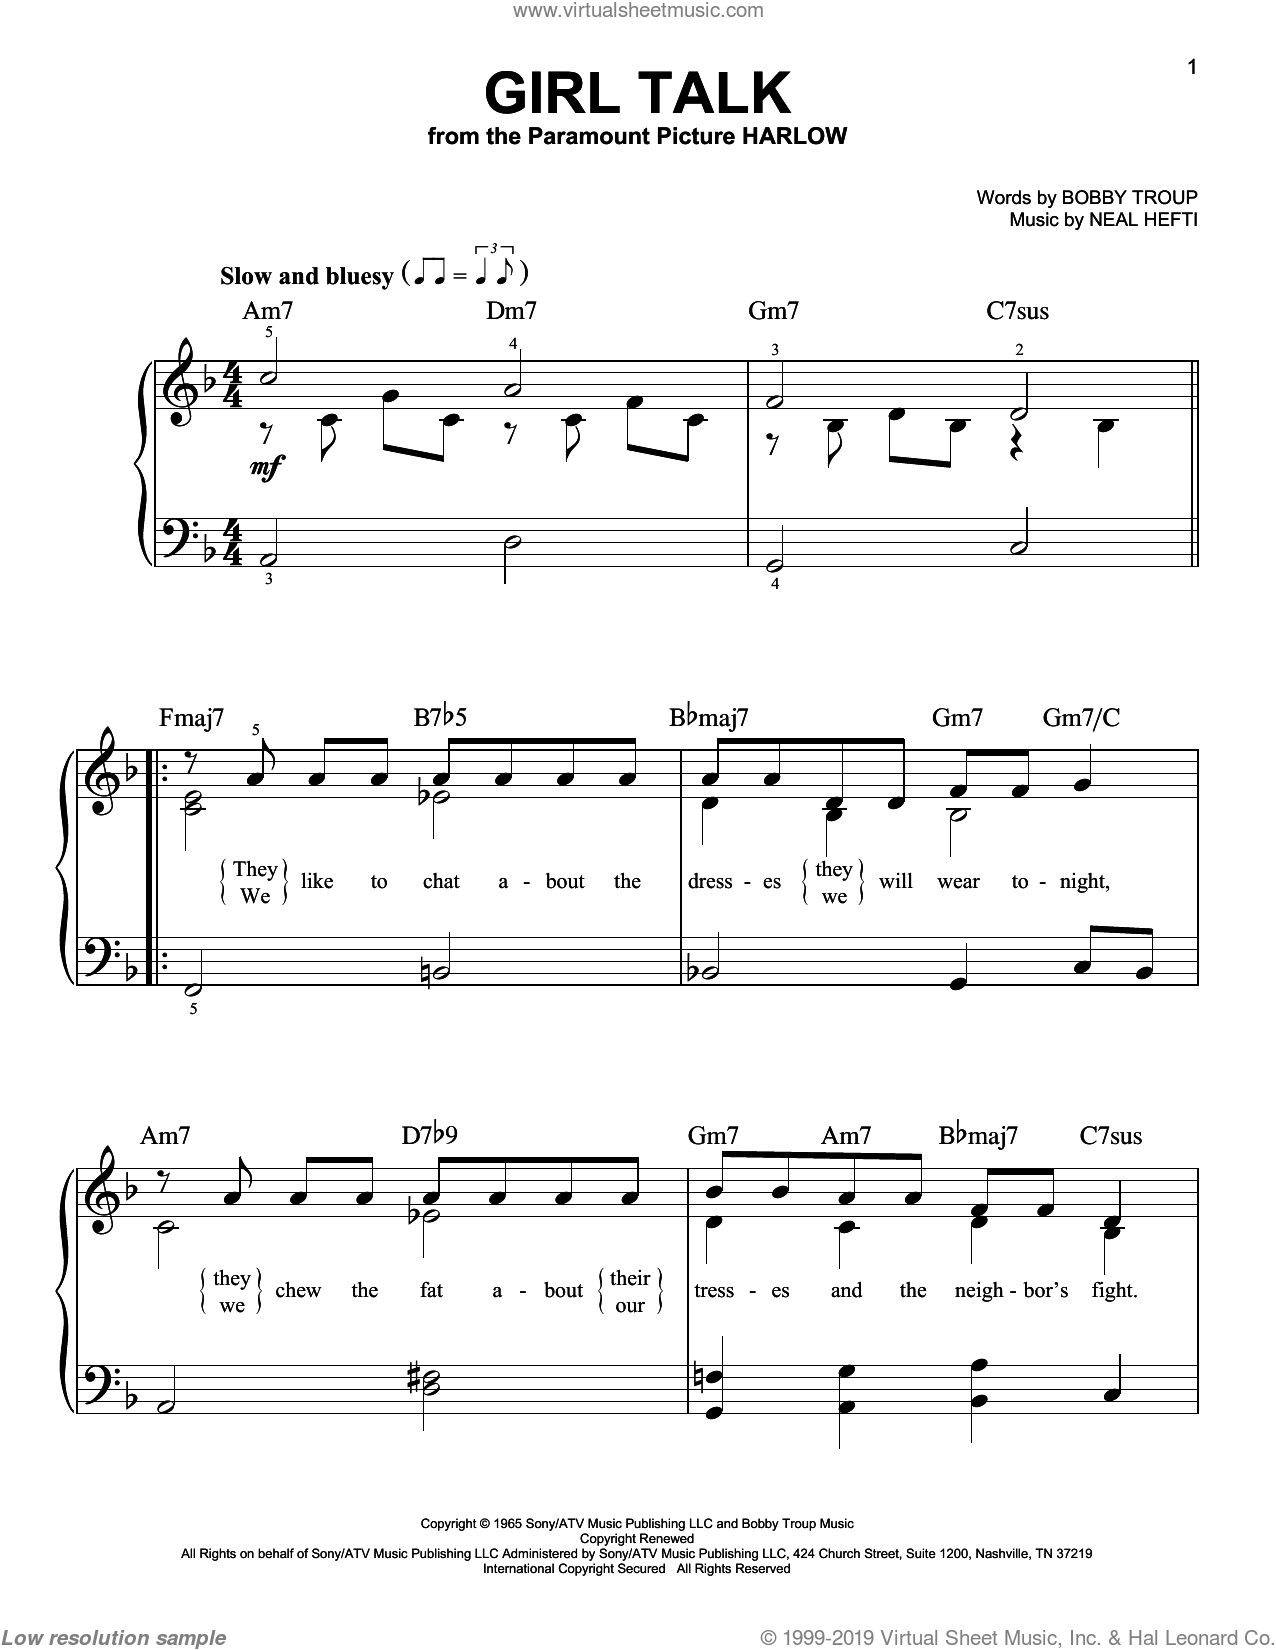 Girl Talk sheet music for piano solo by Neal Hefti